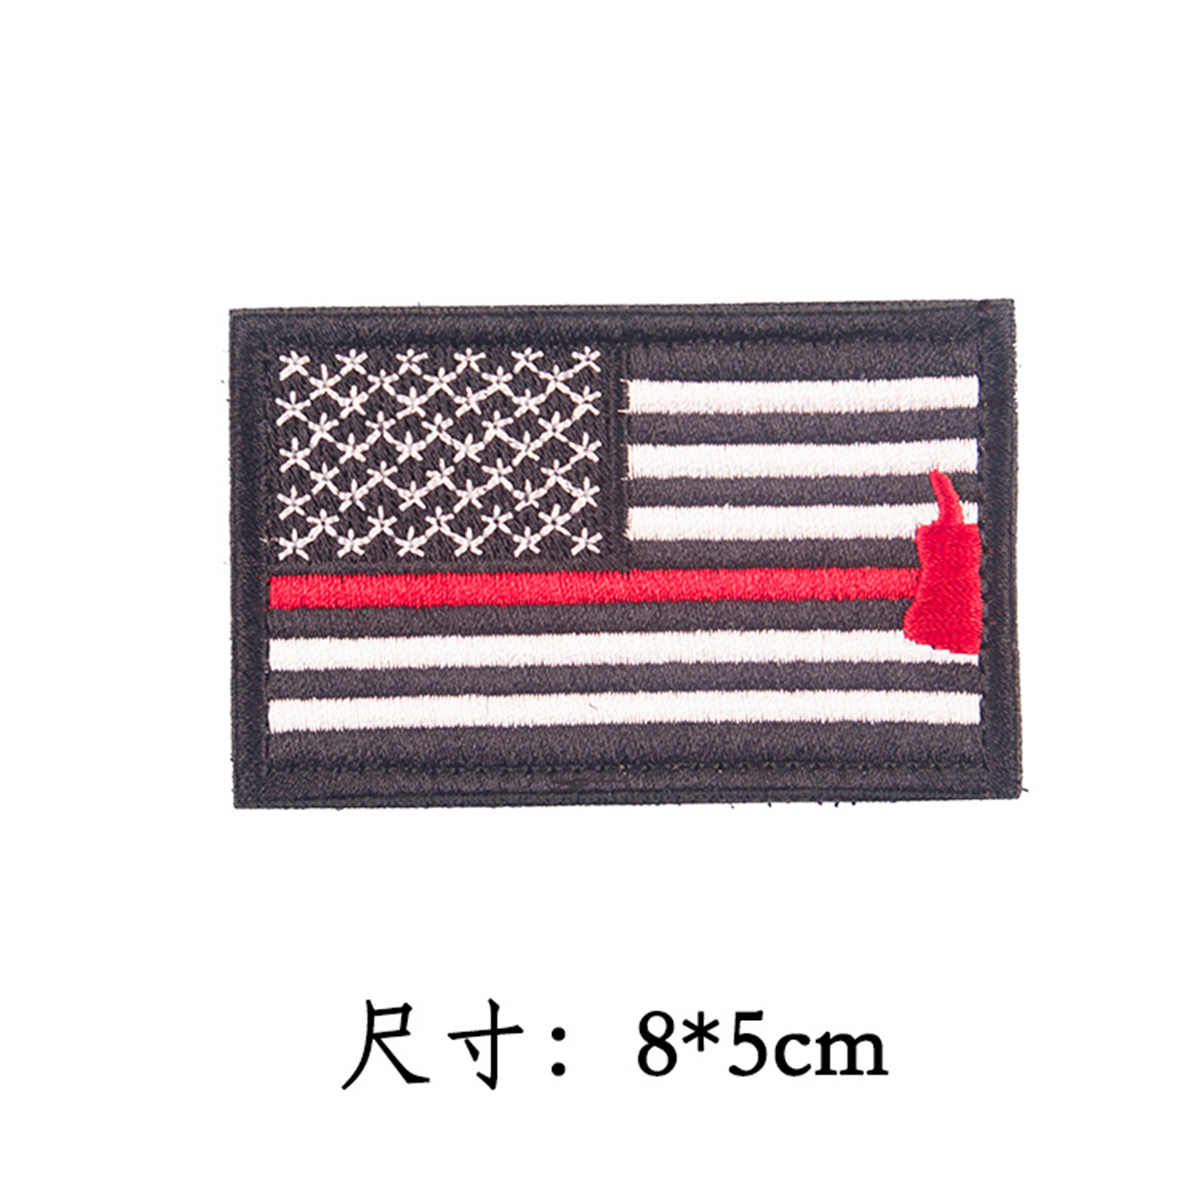 Embroidered American Flag Clothing Accessories Velcro Backpack Decorative Badge USA Armband Patch Sticker